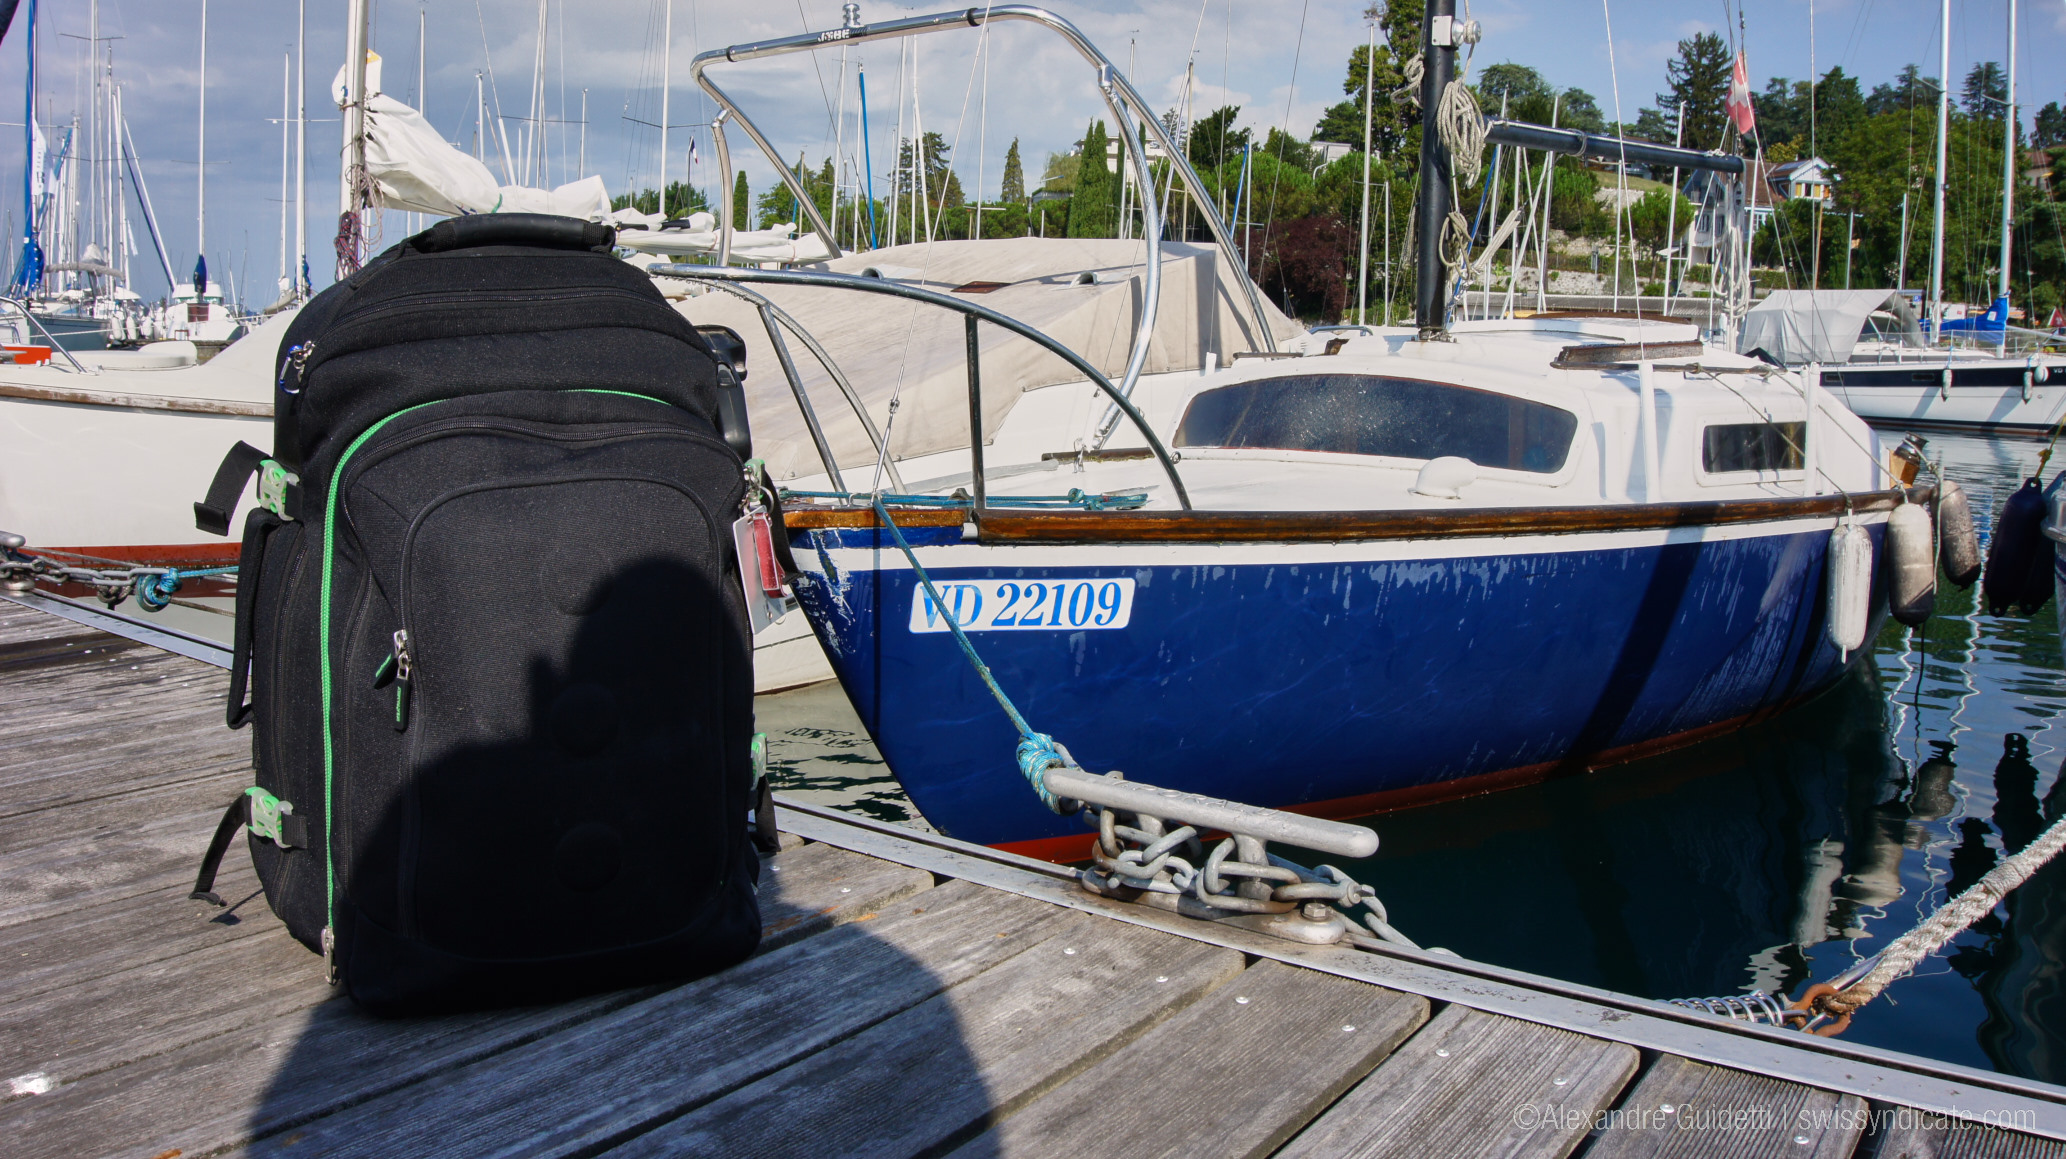 Suitcase and boat ready for Winded Voyage